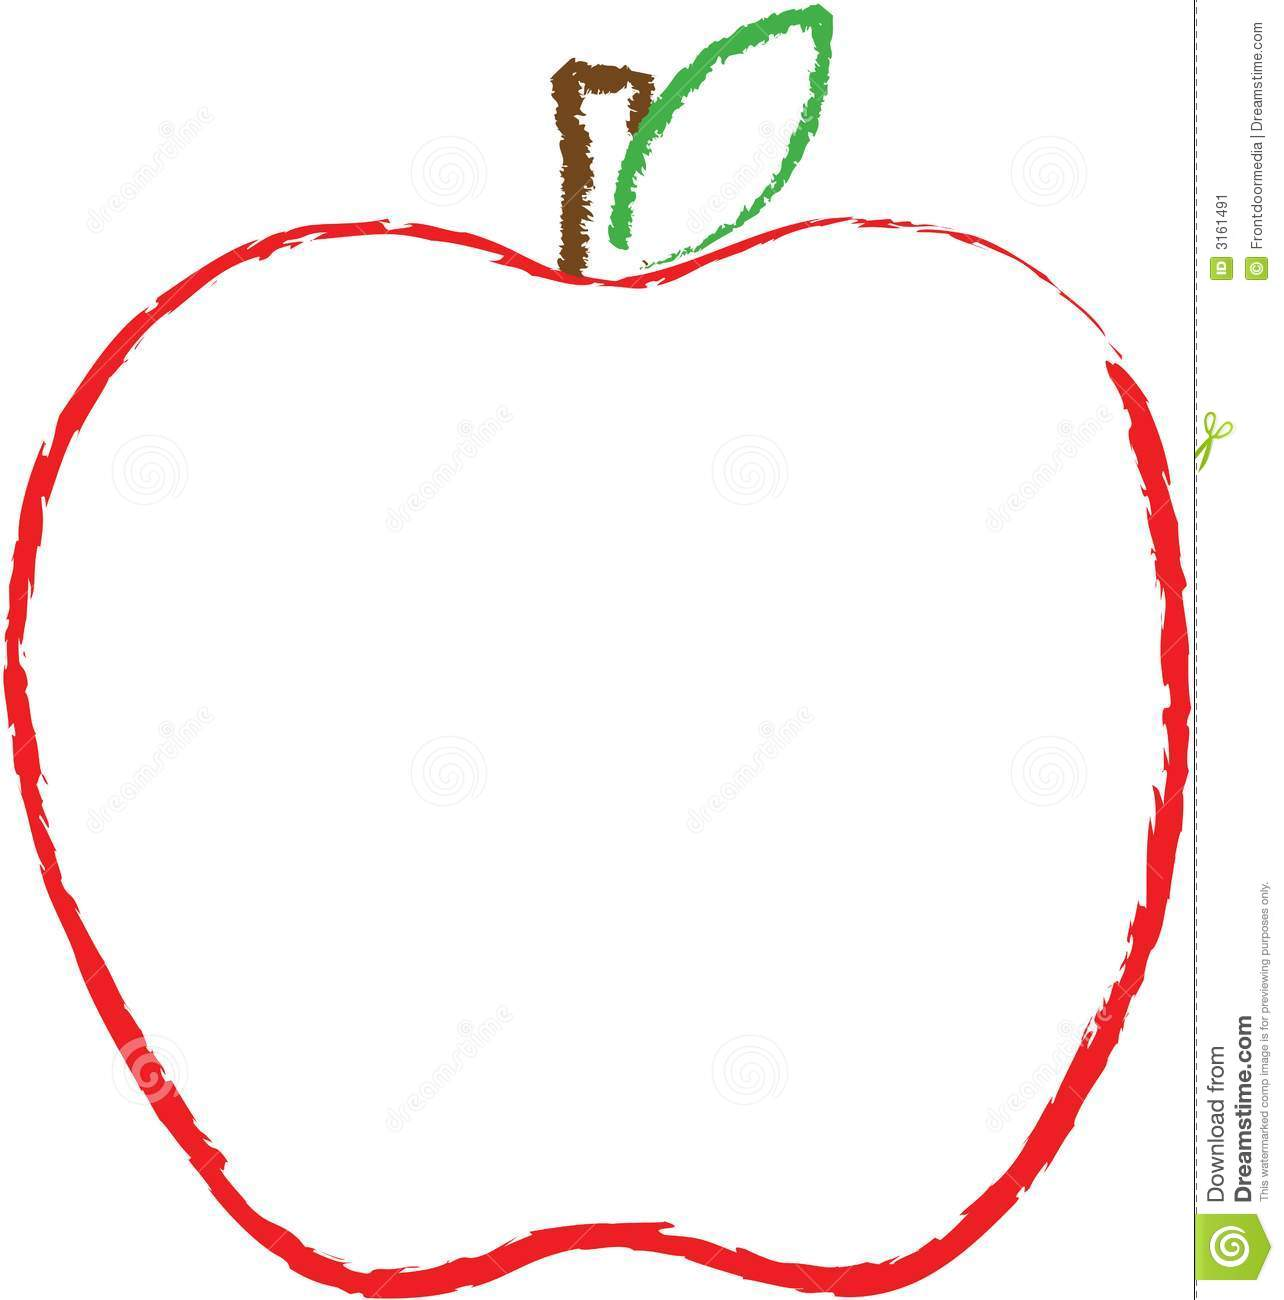 Printable Apple Templates to Make Apple Crafts for Preschool |Template Big Apple